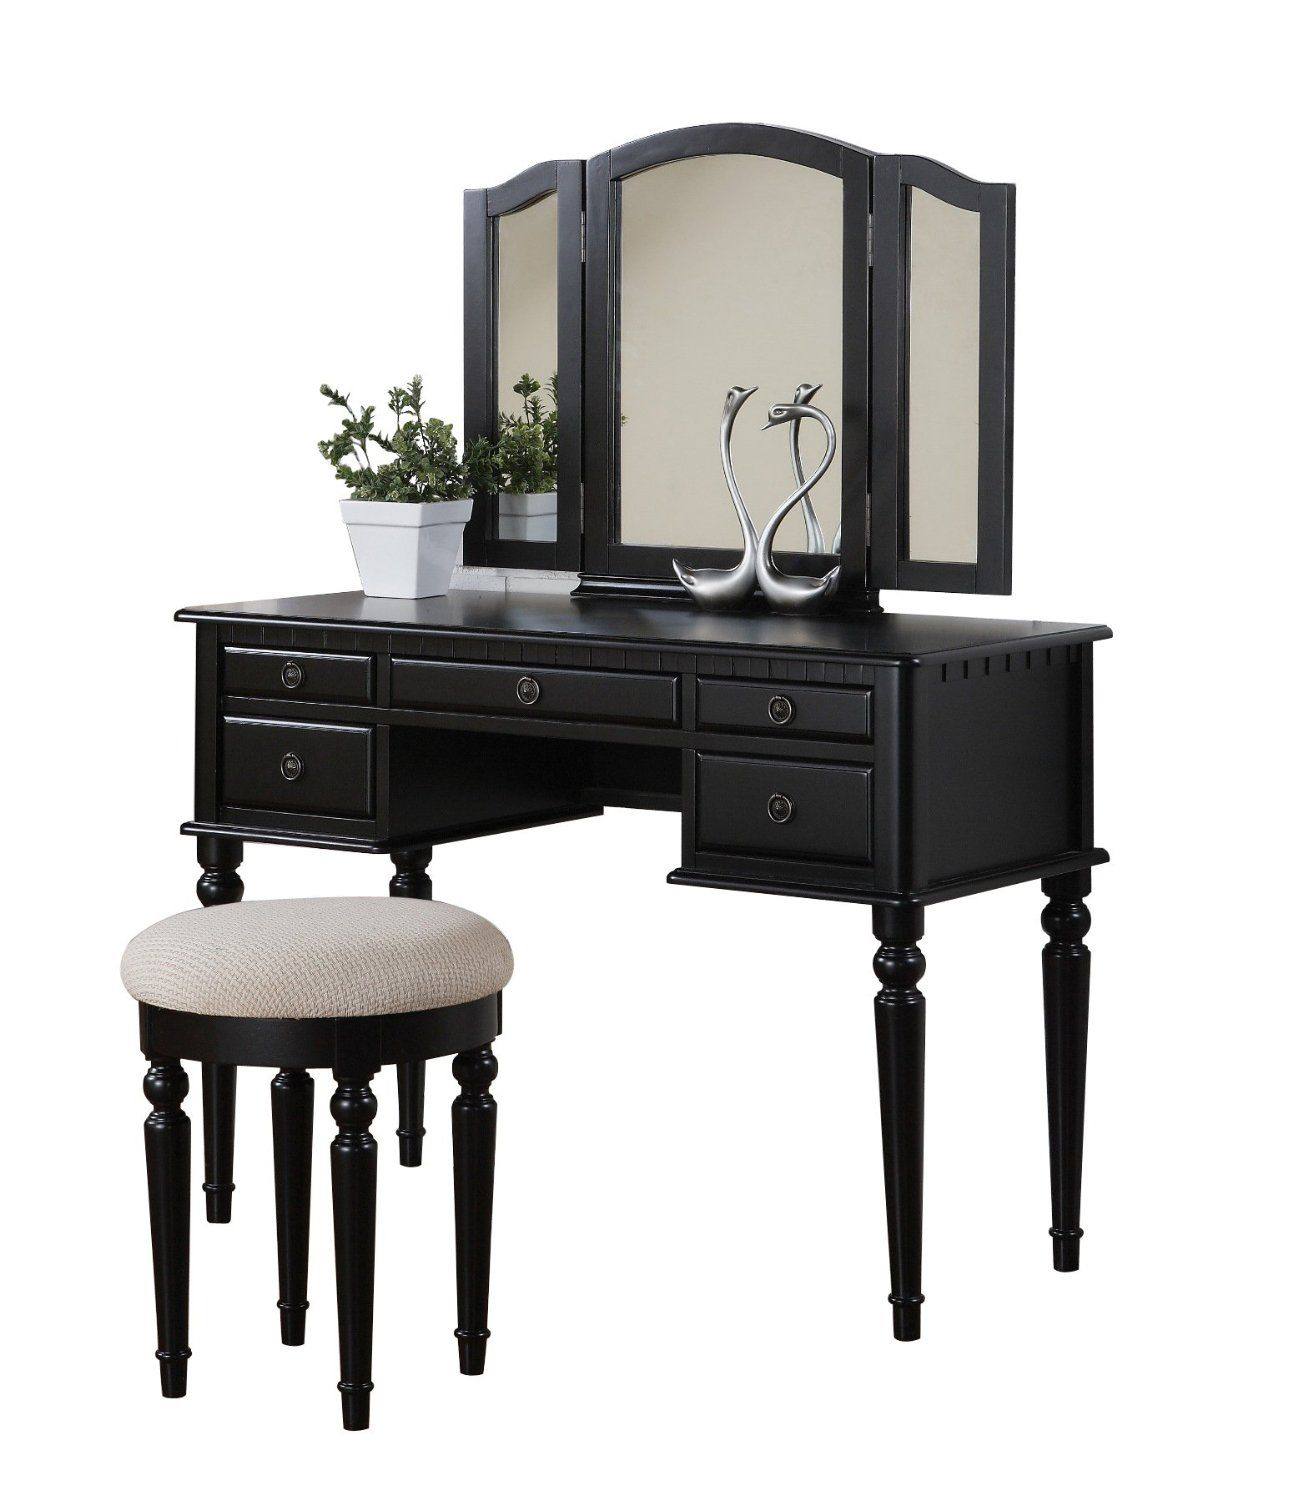 Amazoncom Bobkona St Croix Collection Vanity Set with Stool